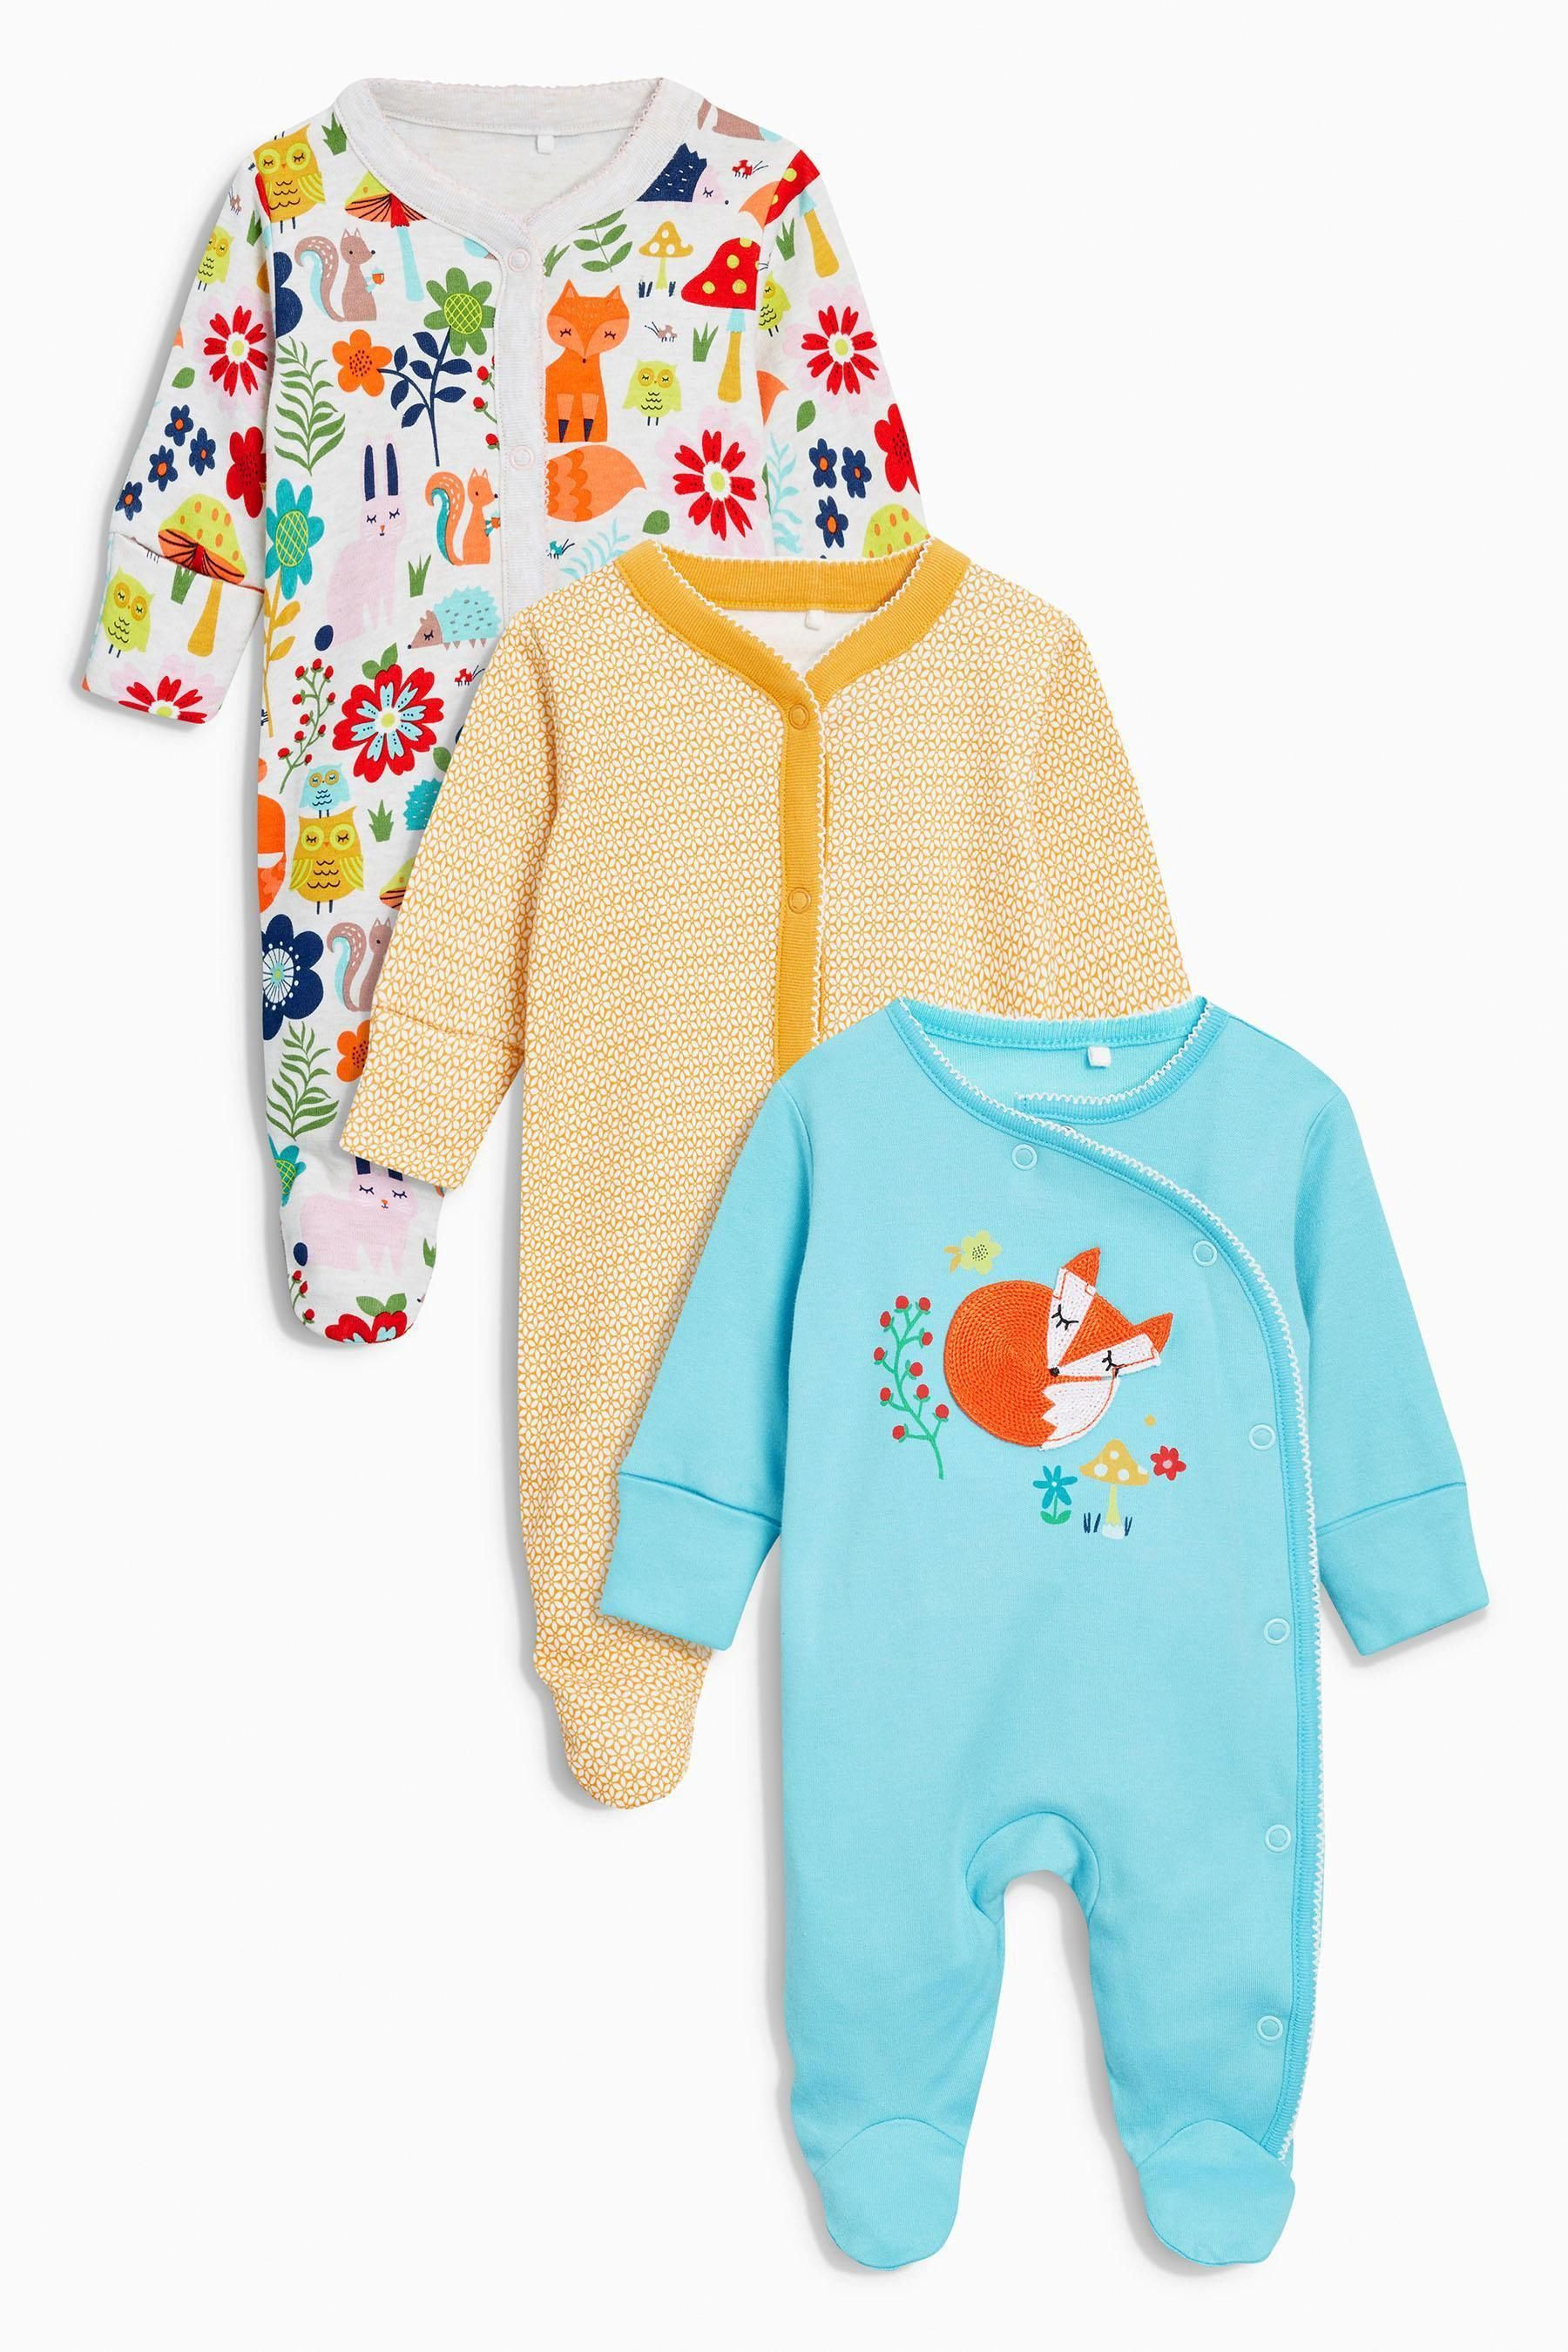 749eb1ca483d Buy Bright Fox Sleepsuits Three Pack (0mths-2yrs) from the Next UK online  shop  FallOutBoyVsFashionShow